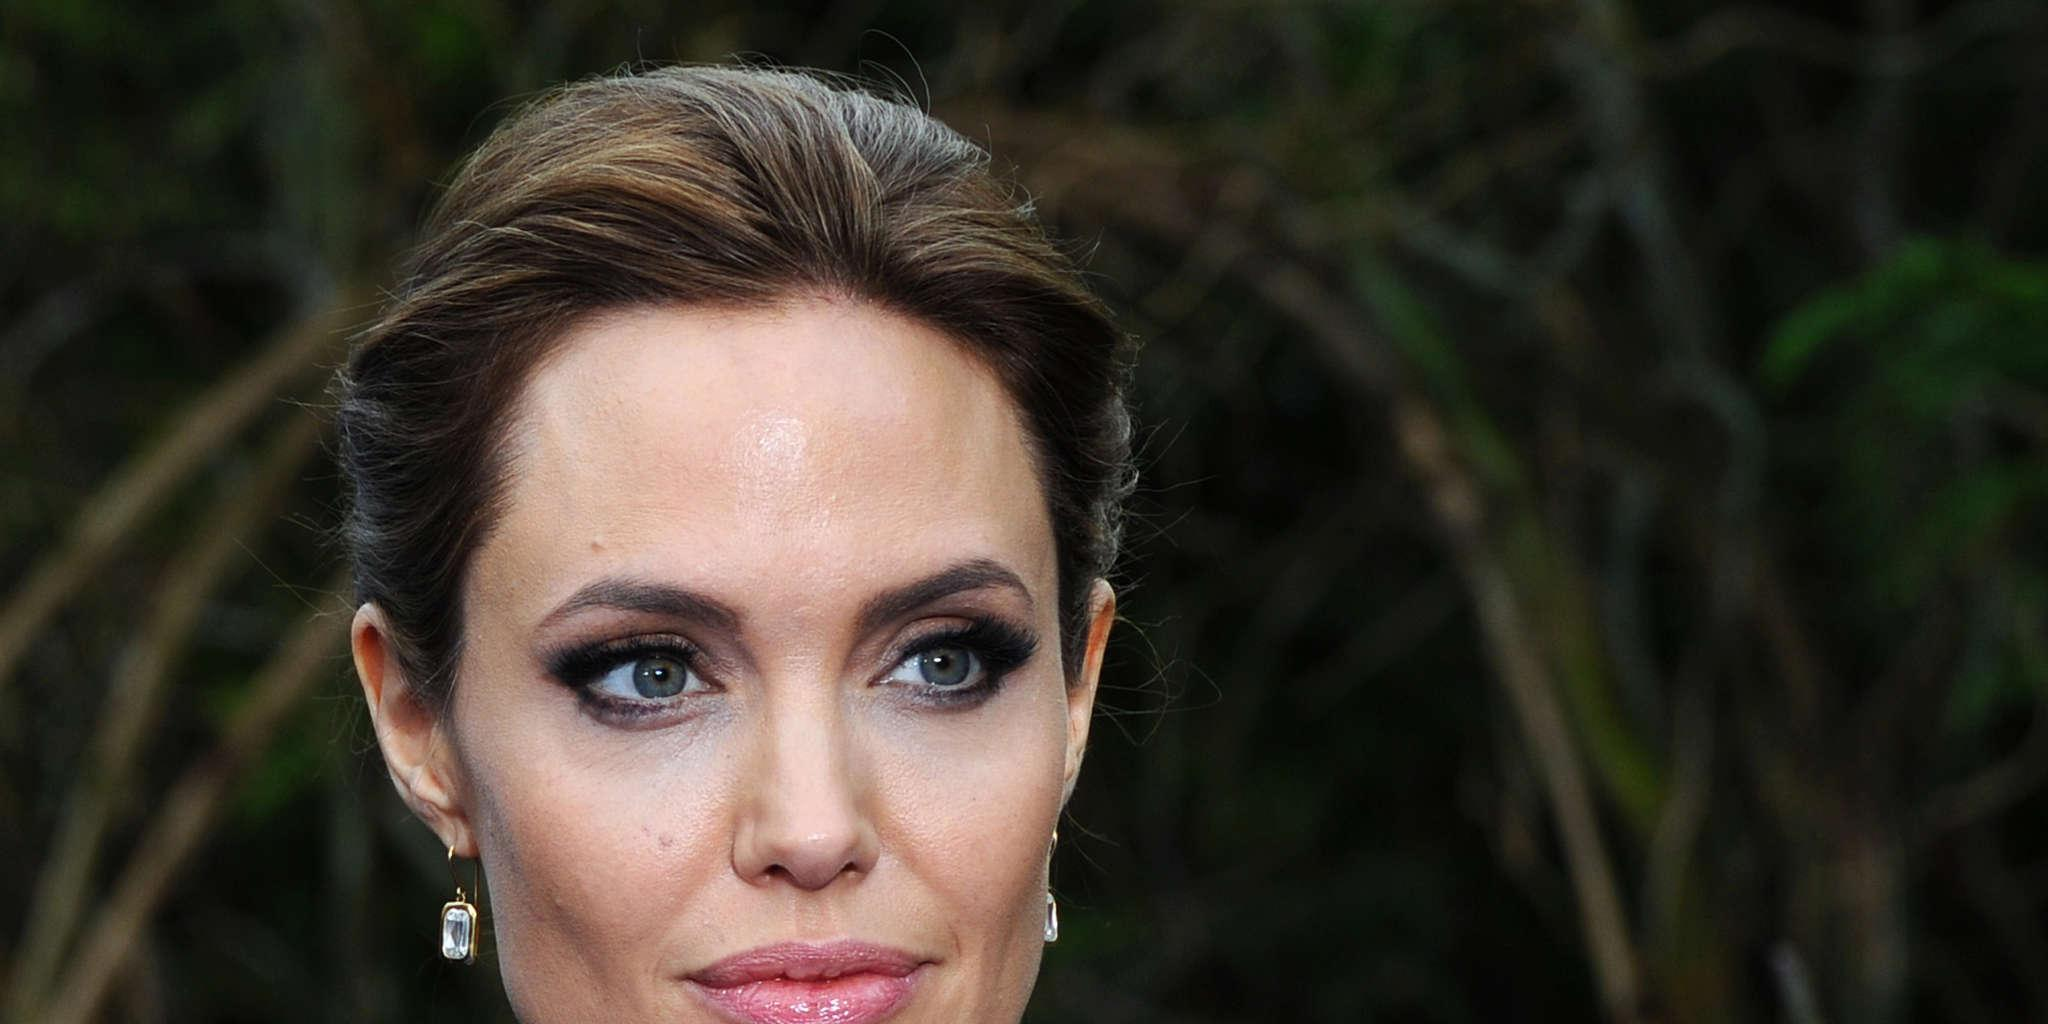 Angelina Jolie Writes Powerful Essay About Domestic Violence Amid The Pandemic